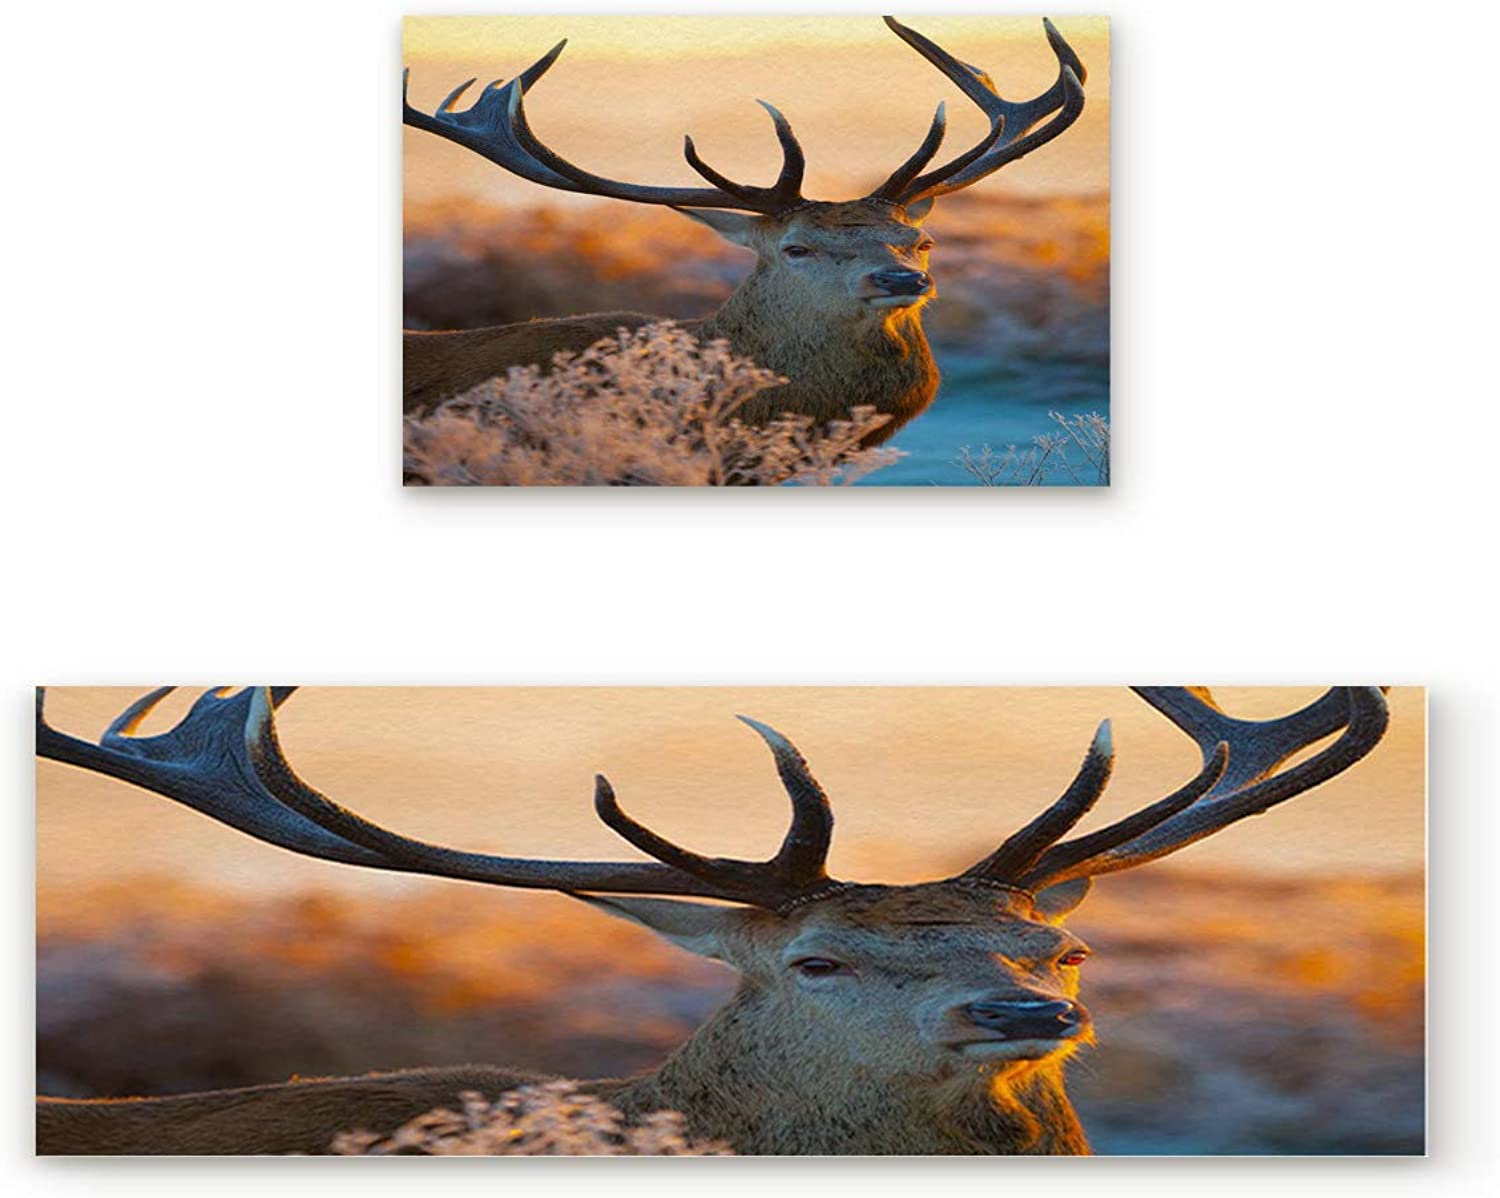 KAROLA 2 Piece Non-Slip Kitchen Mat Doormat Runner Rug Set Thin Low Pile Indoor Area Rugs Fantastic Deer in Sunset Forest 19.7 x31.5 +19.7 x47.2